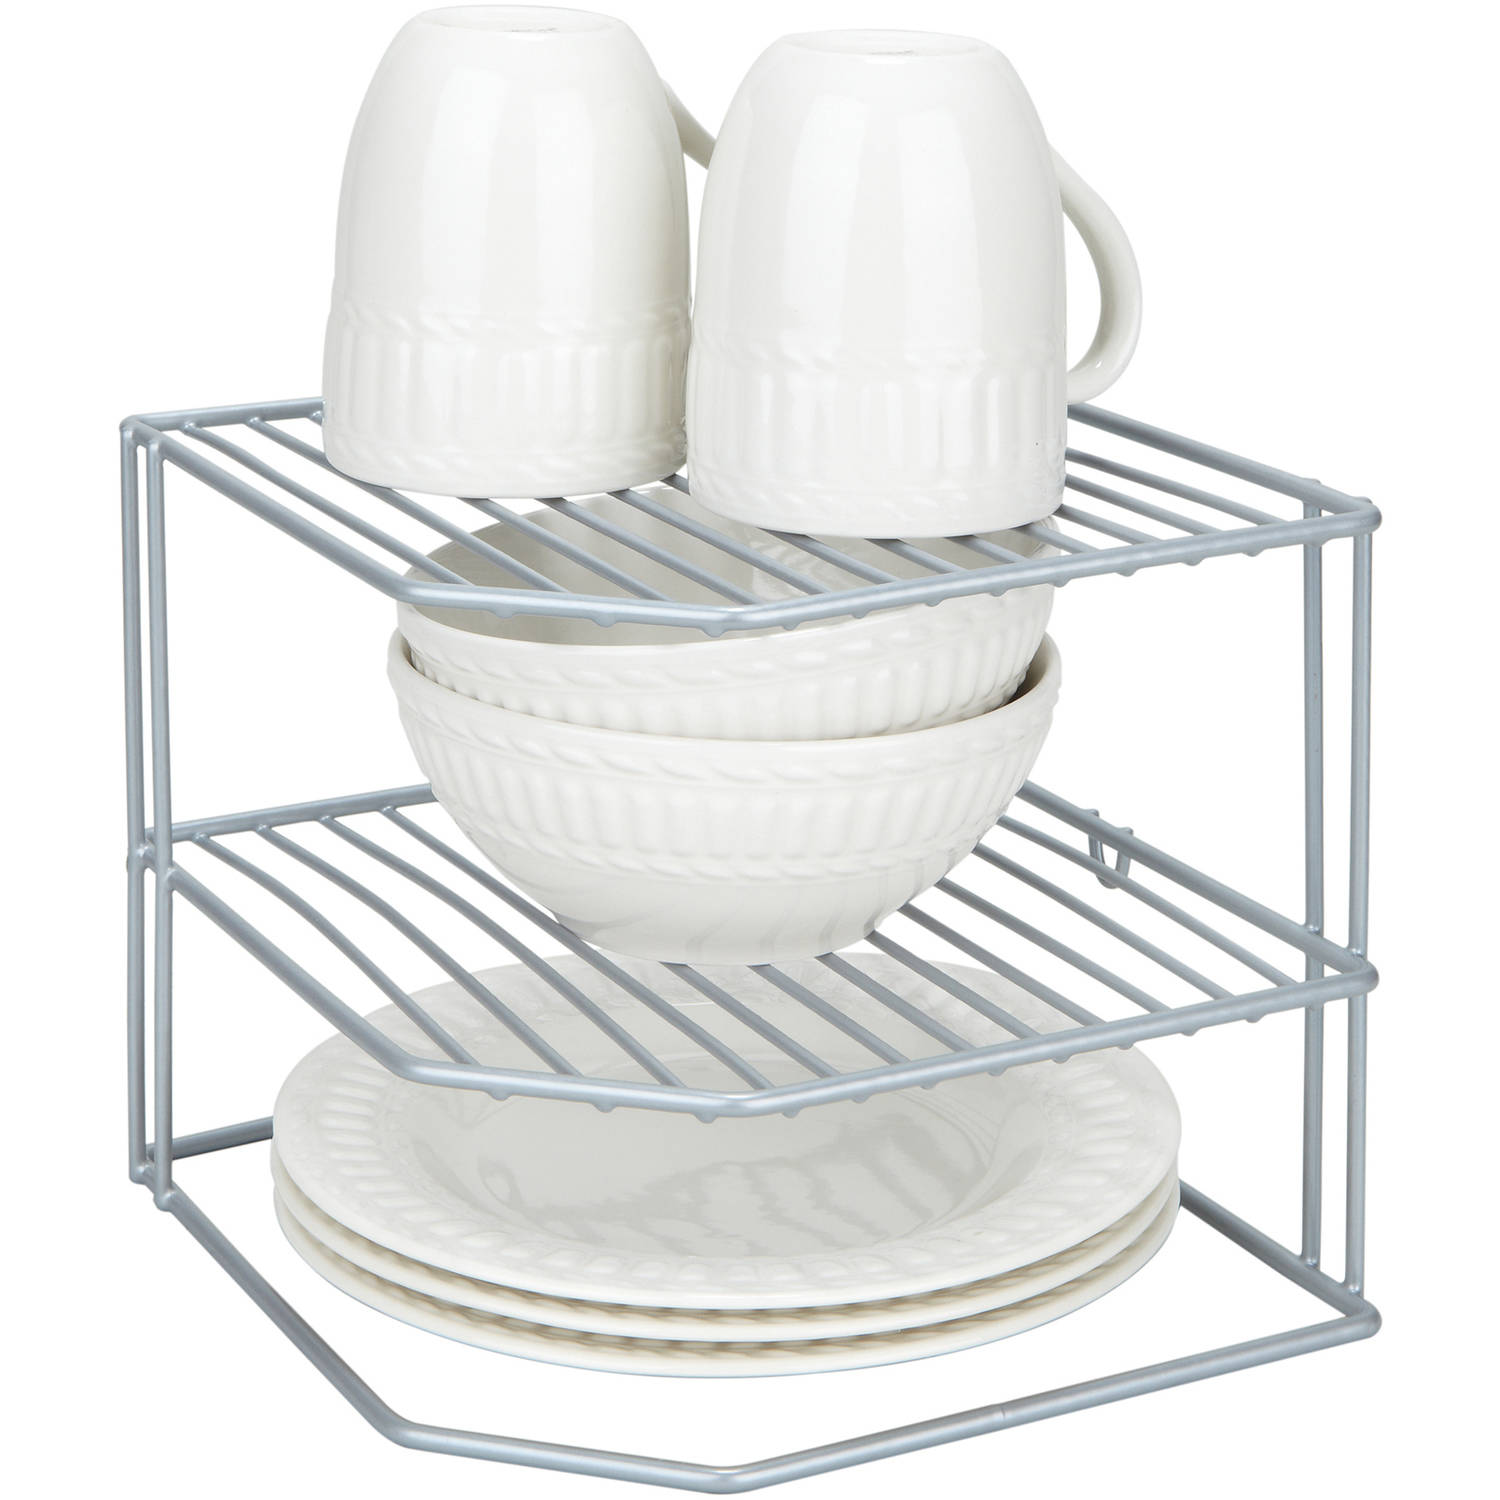 Kitchen Details Corner Storage Rack, Grey